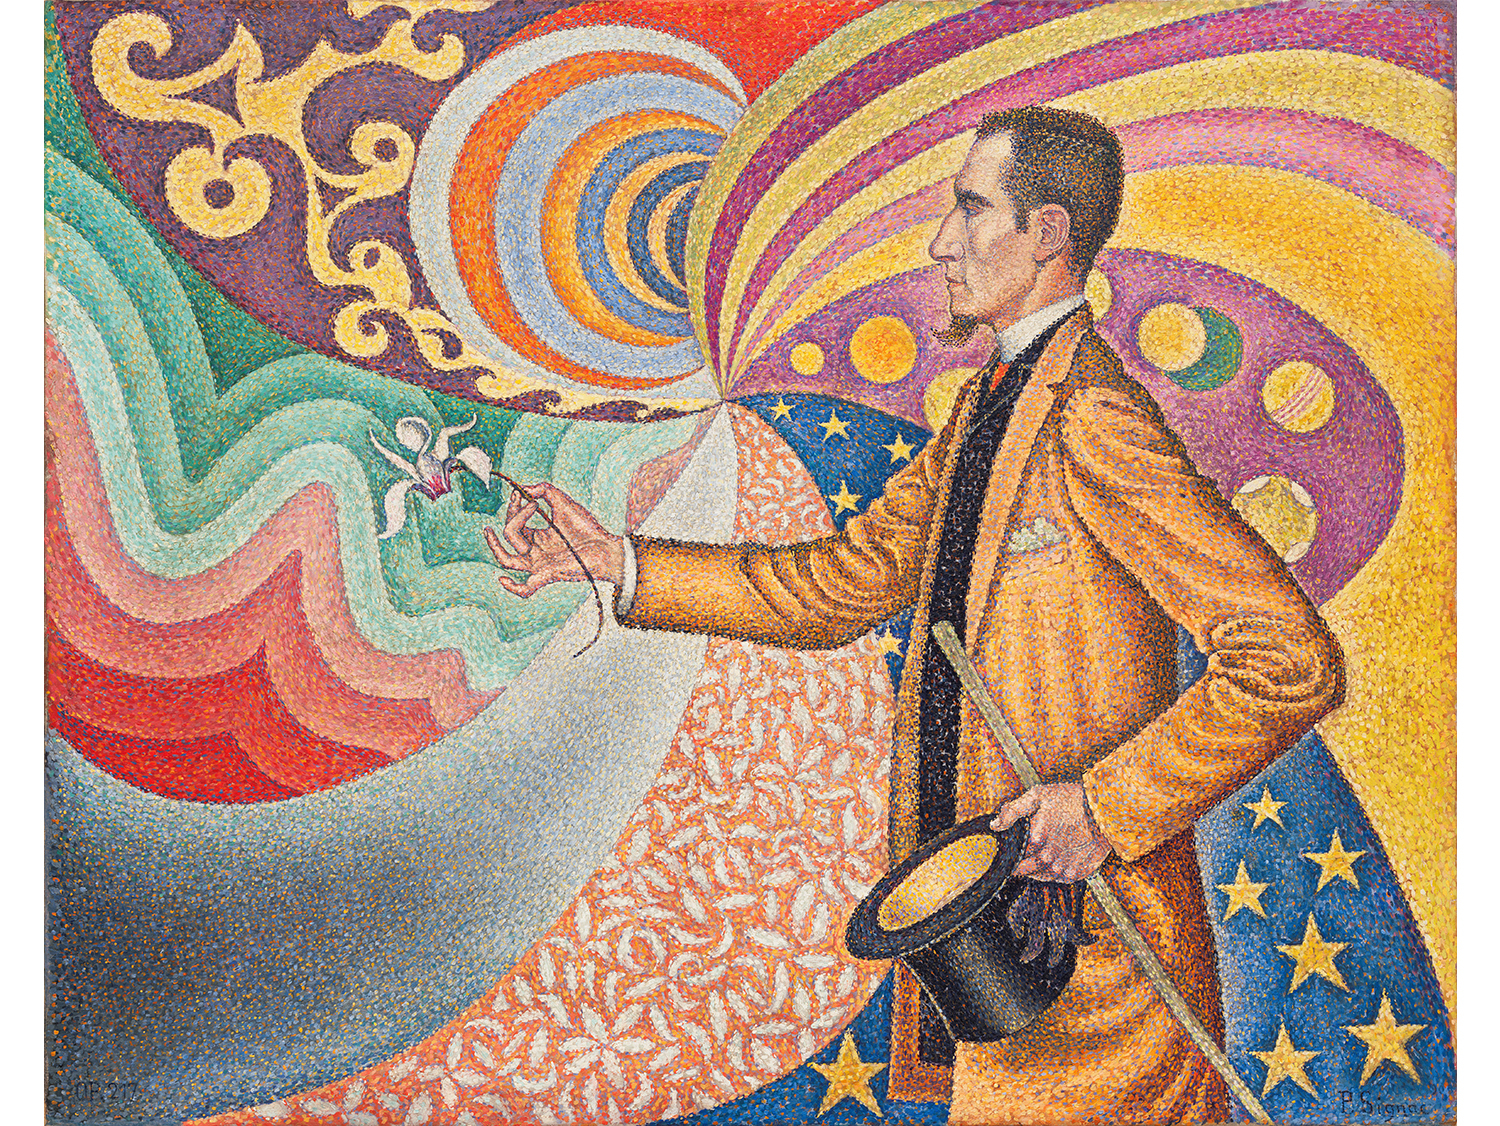 Paul Signac, Opus 217. Against the Enamel of a Background Rhythmic with Beats and Angles, Tones, and Tints, Portrait of M. Félix Fénéon in 1890, 1890